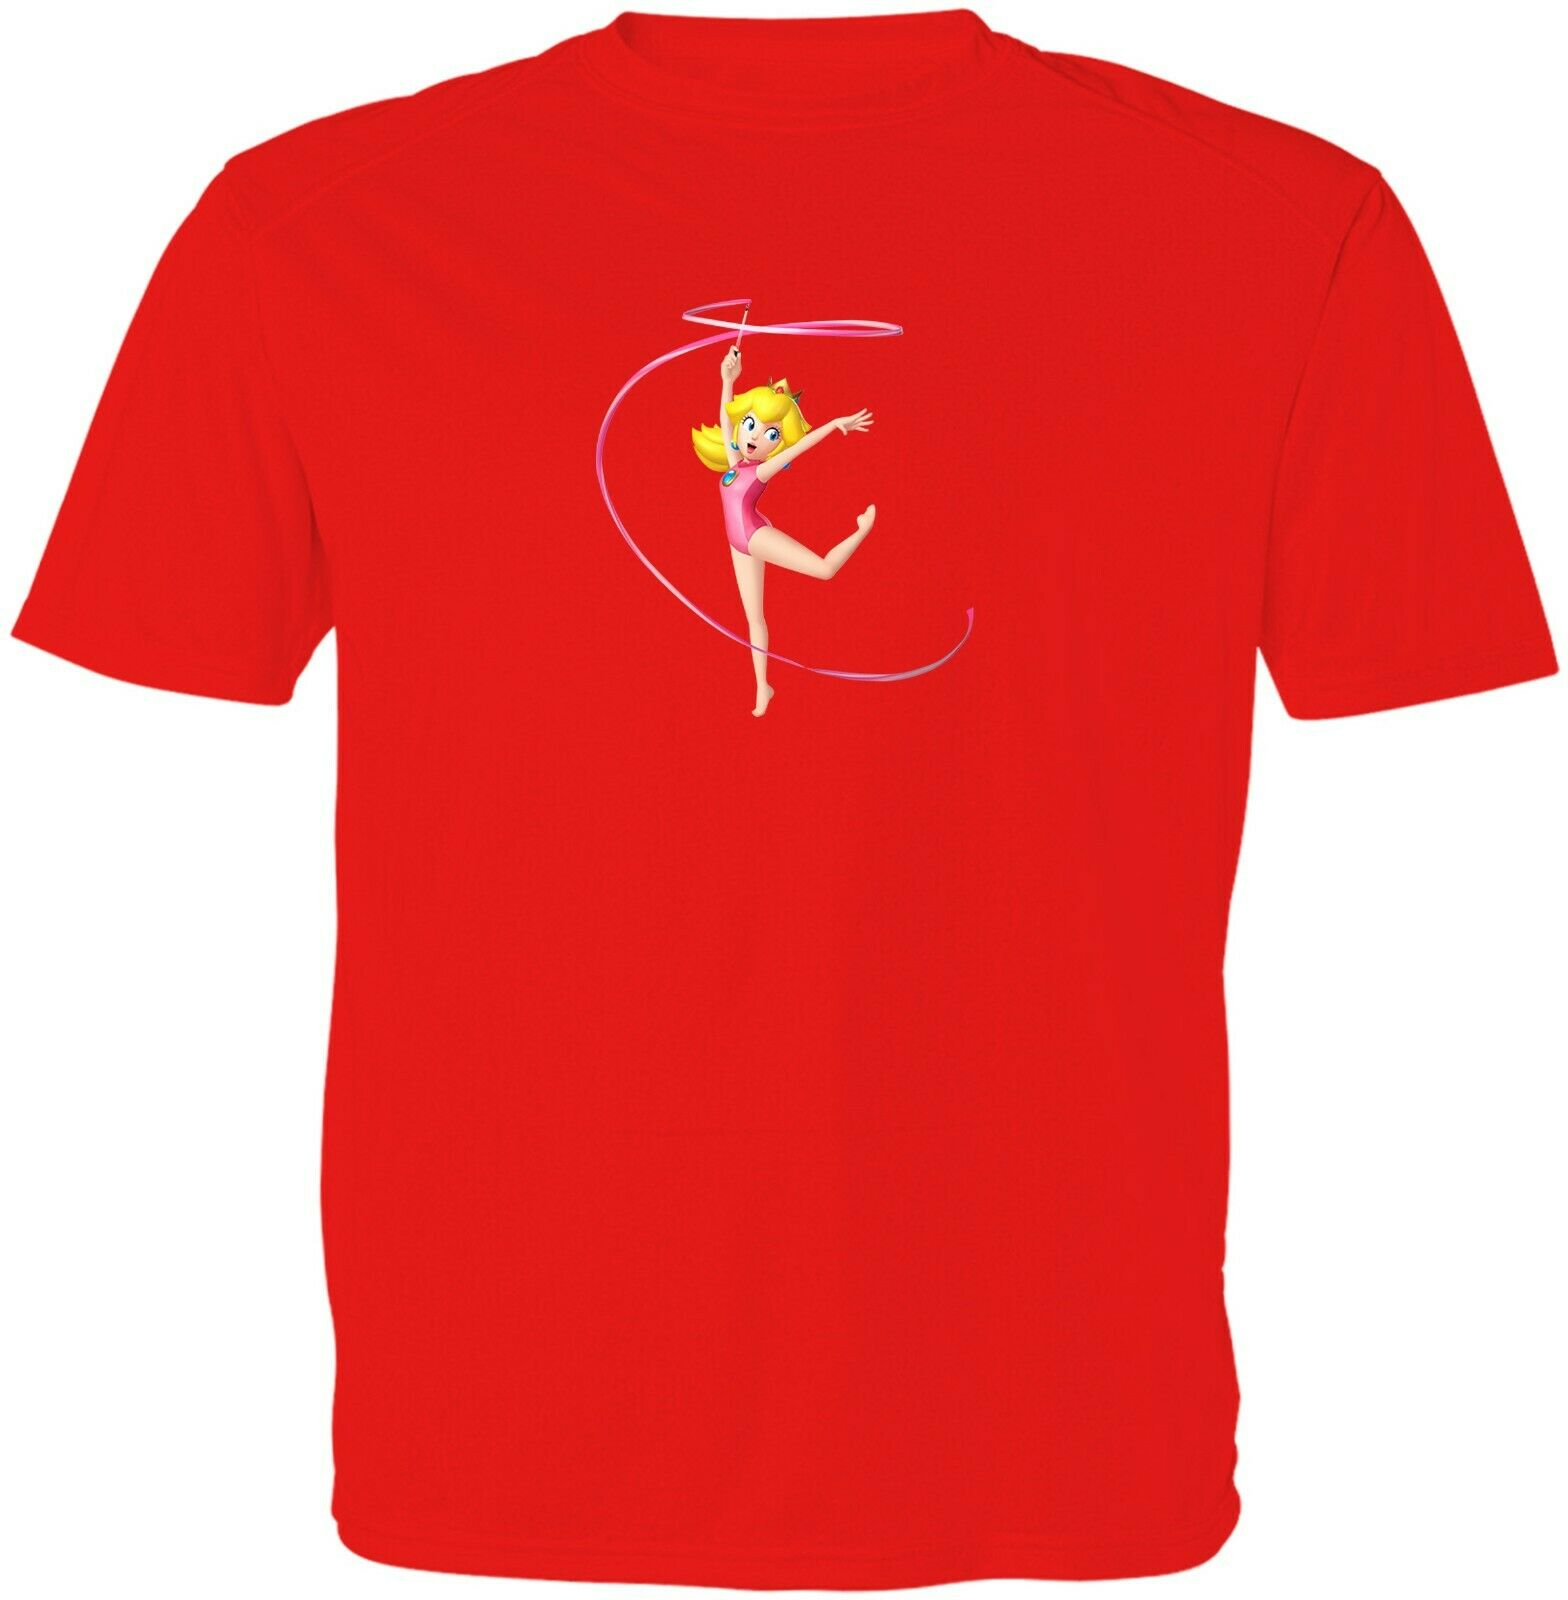 Team Bruce Jenner USA 935 Olympic Costume Red Youth T-Shirt